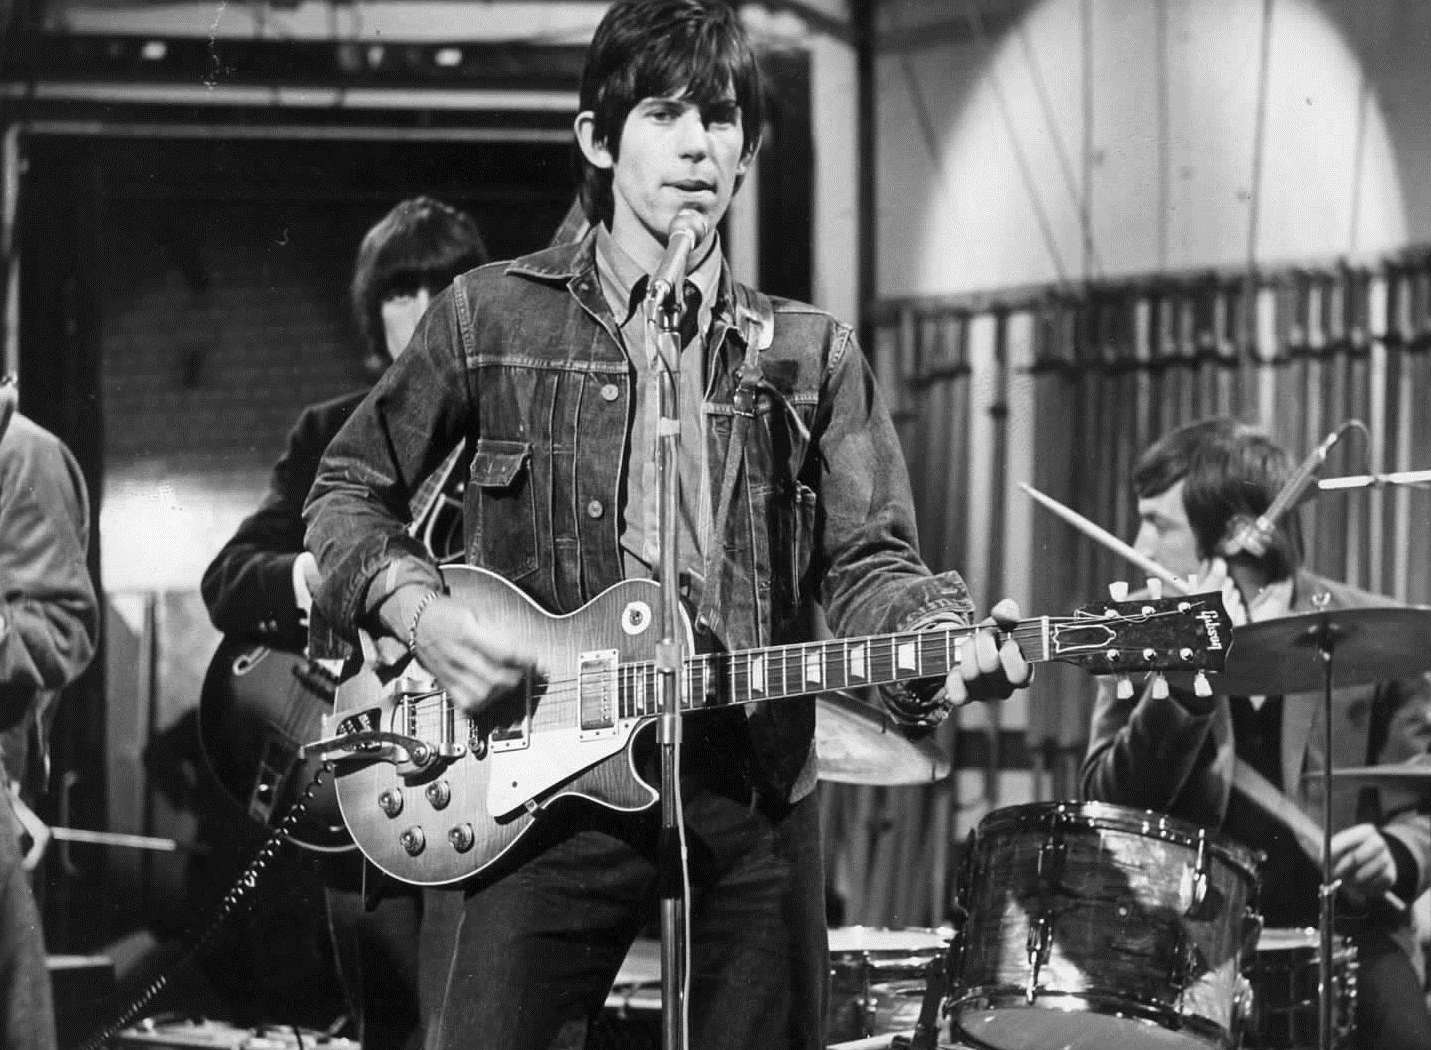 Keith Richards was a regular visitor to the Vox factory